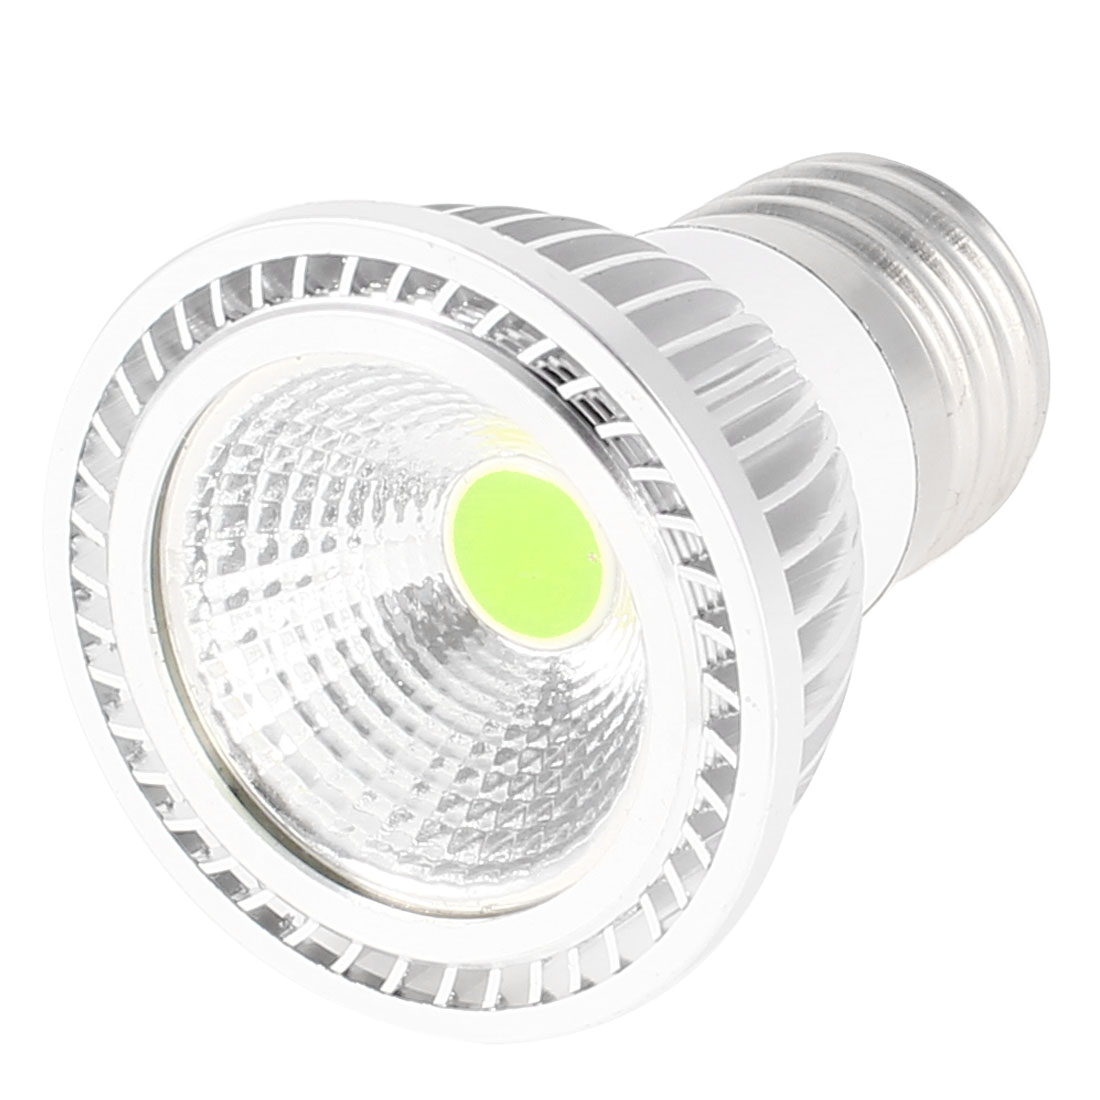 AC 85-265V E27 Base 3Watt White LED Light Energy Saving Ceiling COB Spotlight Bulb